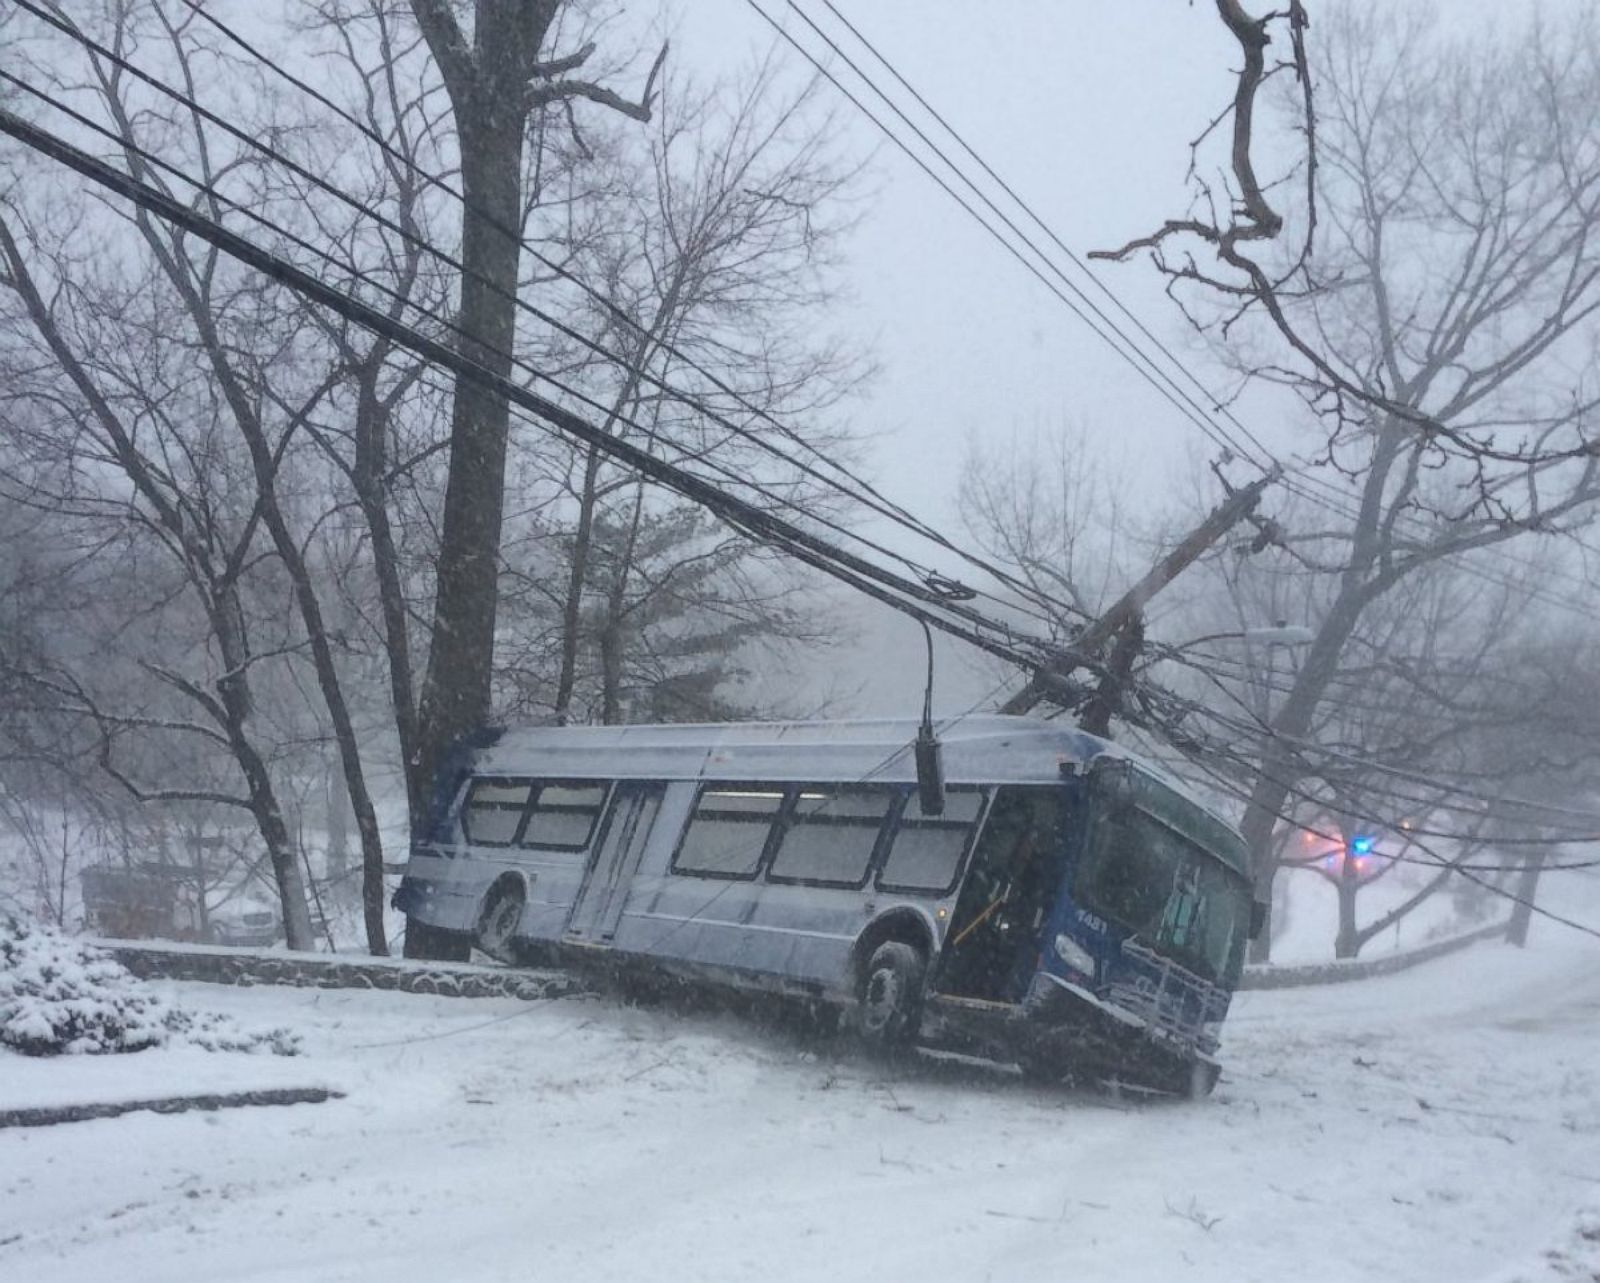 Epic Snowstorm Hits East Coast Photos - ABC News